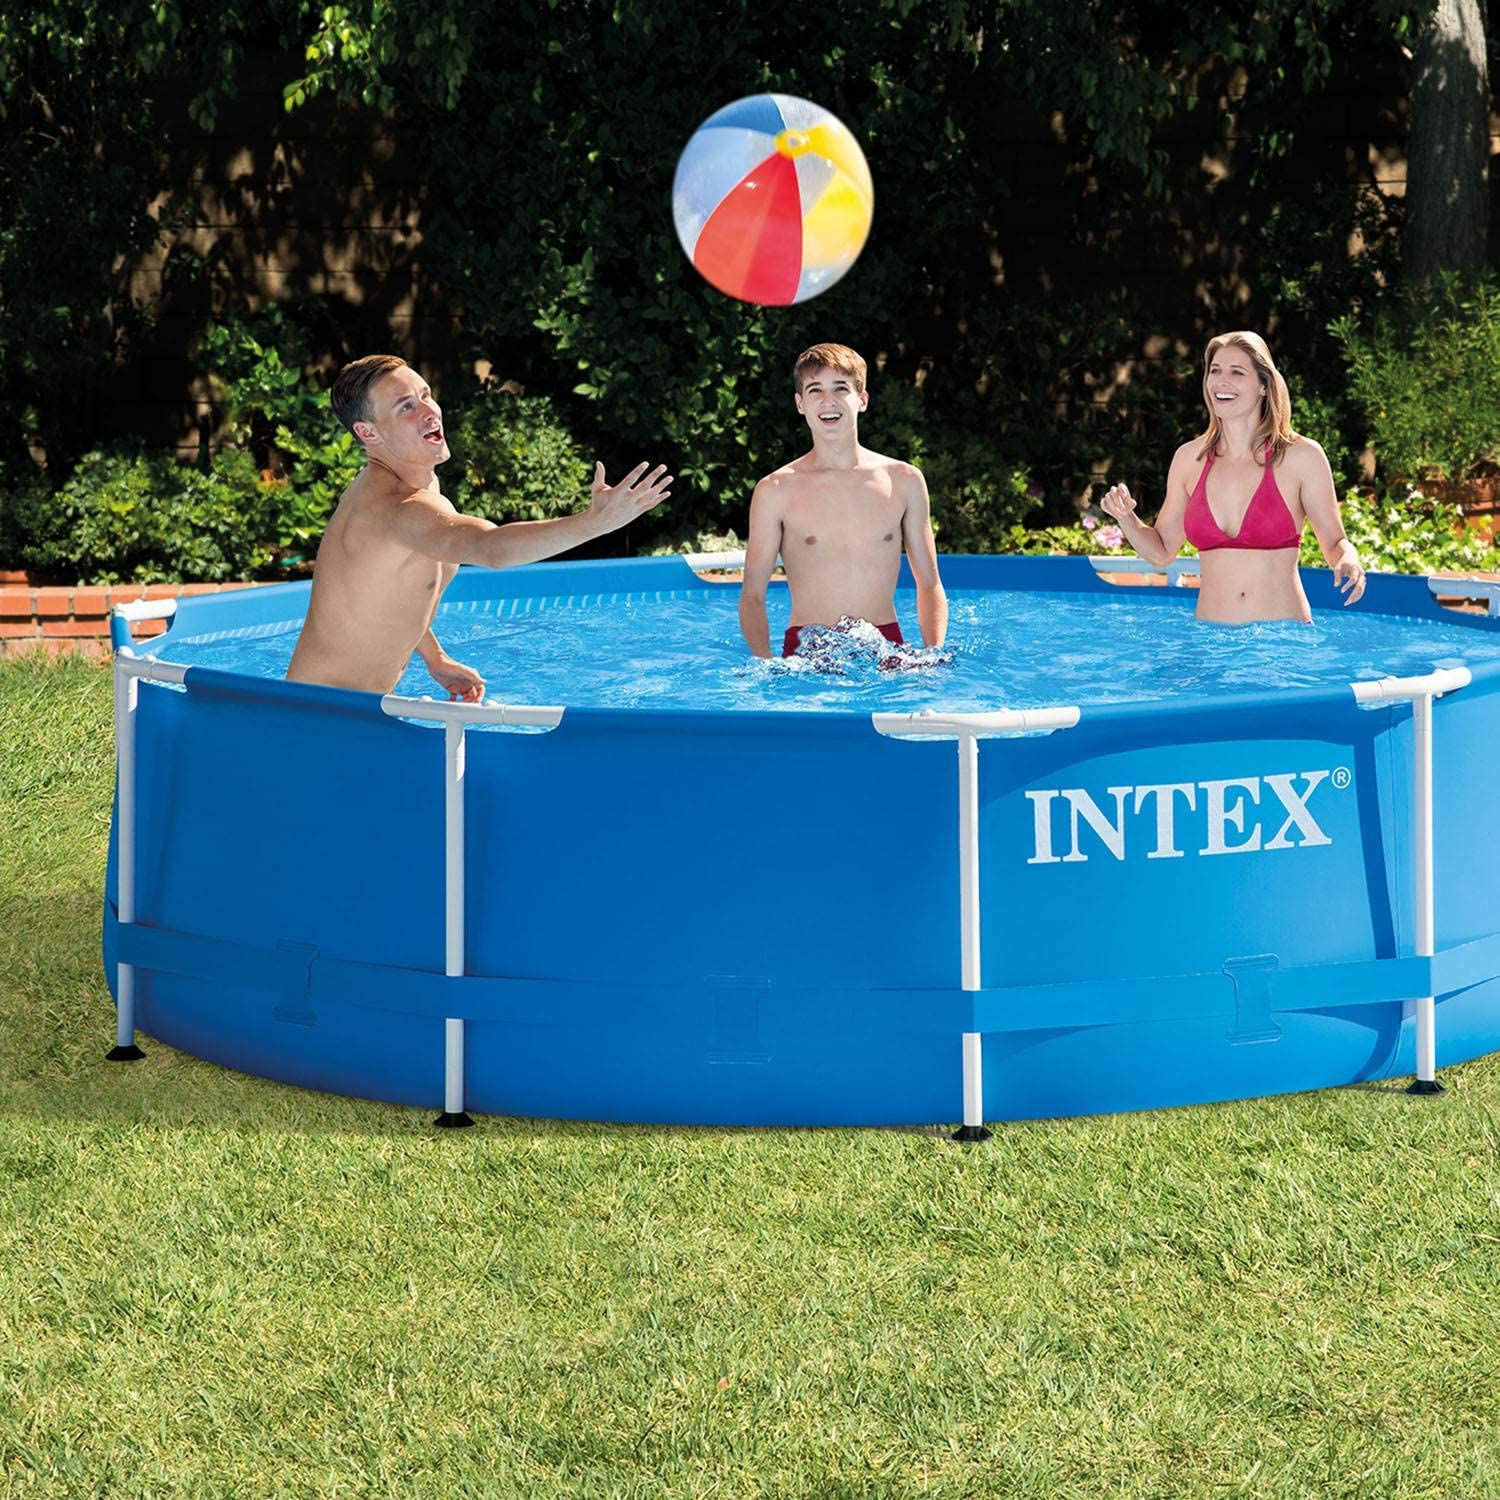 Amazon.com: Intex - Piscina redonda con marco de metal en la ...